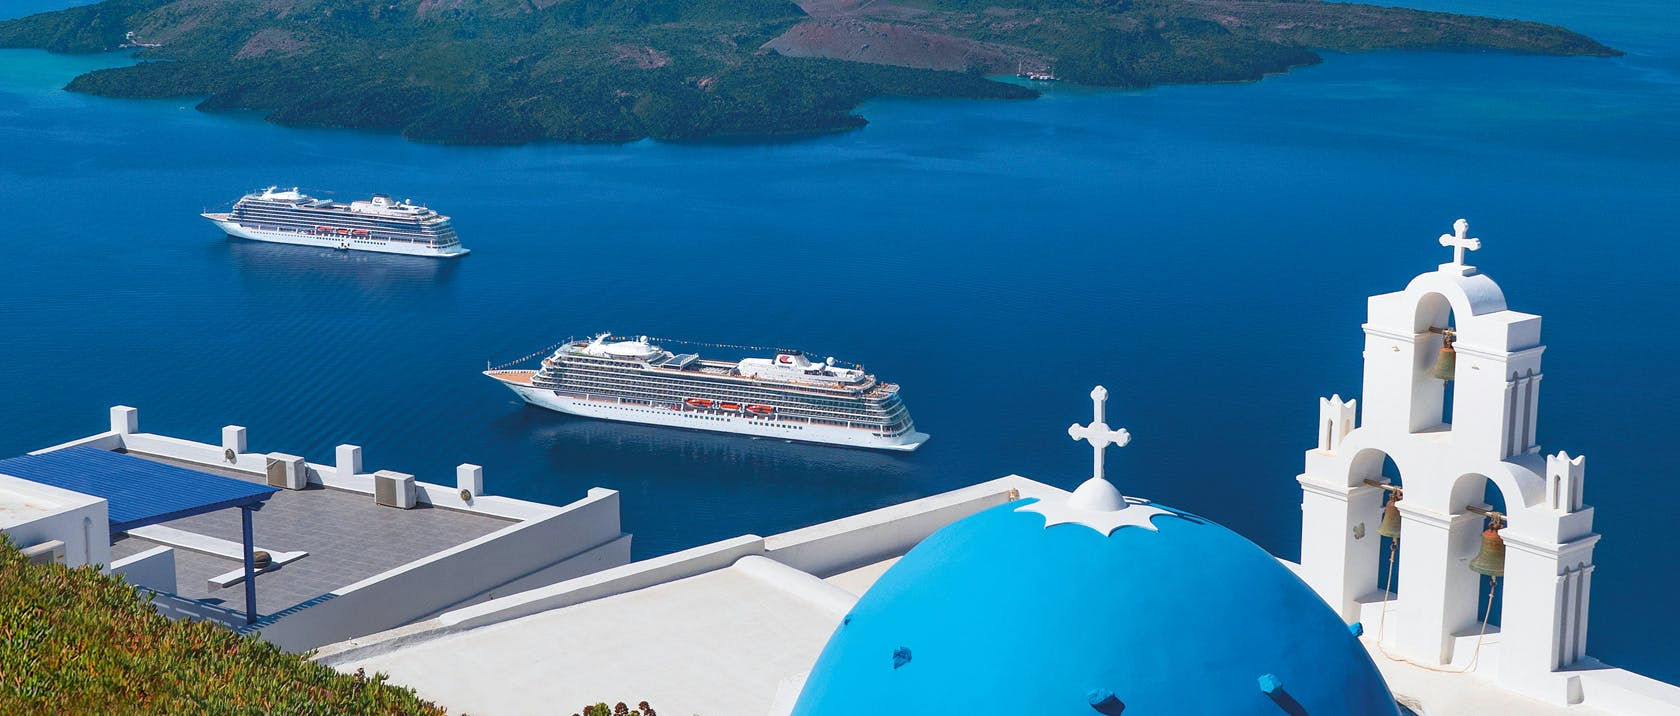 From Santorini to the Seine, Viking has options for every traveler and taste.